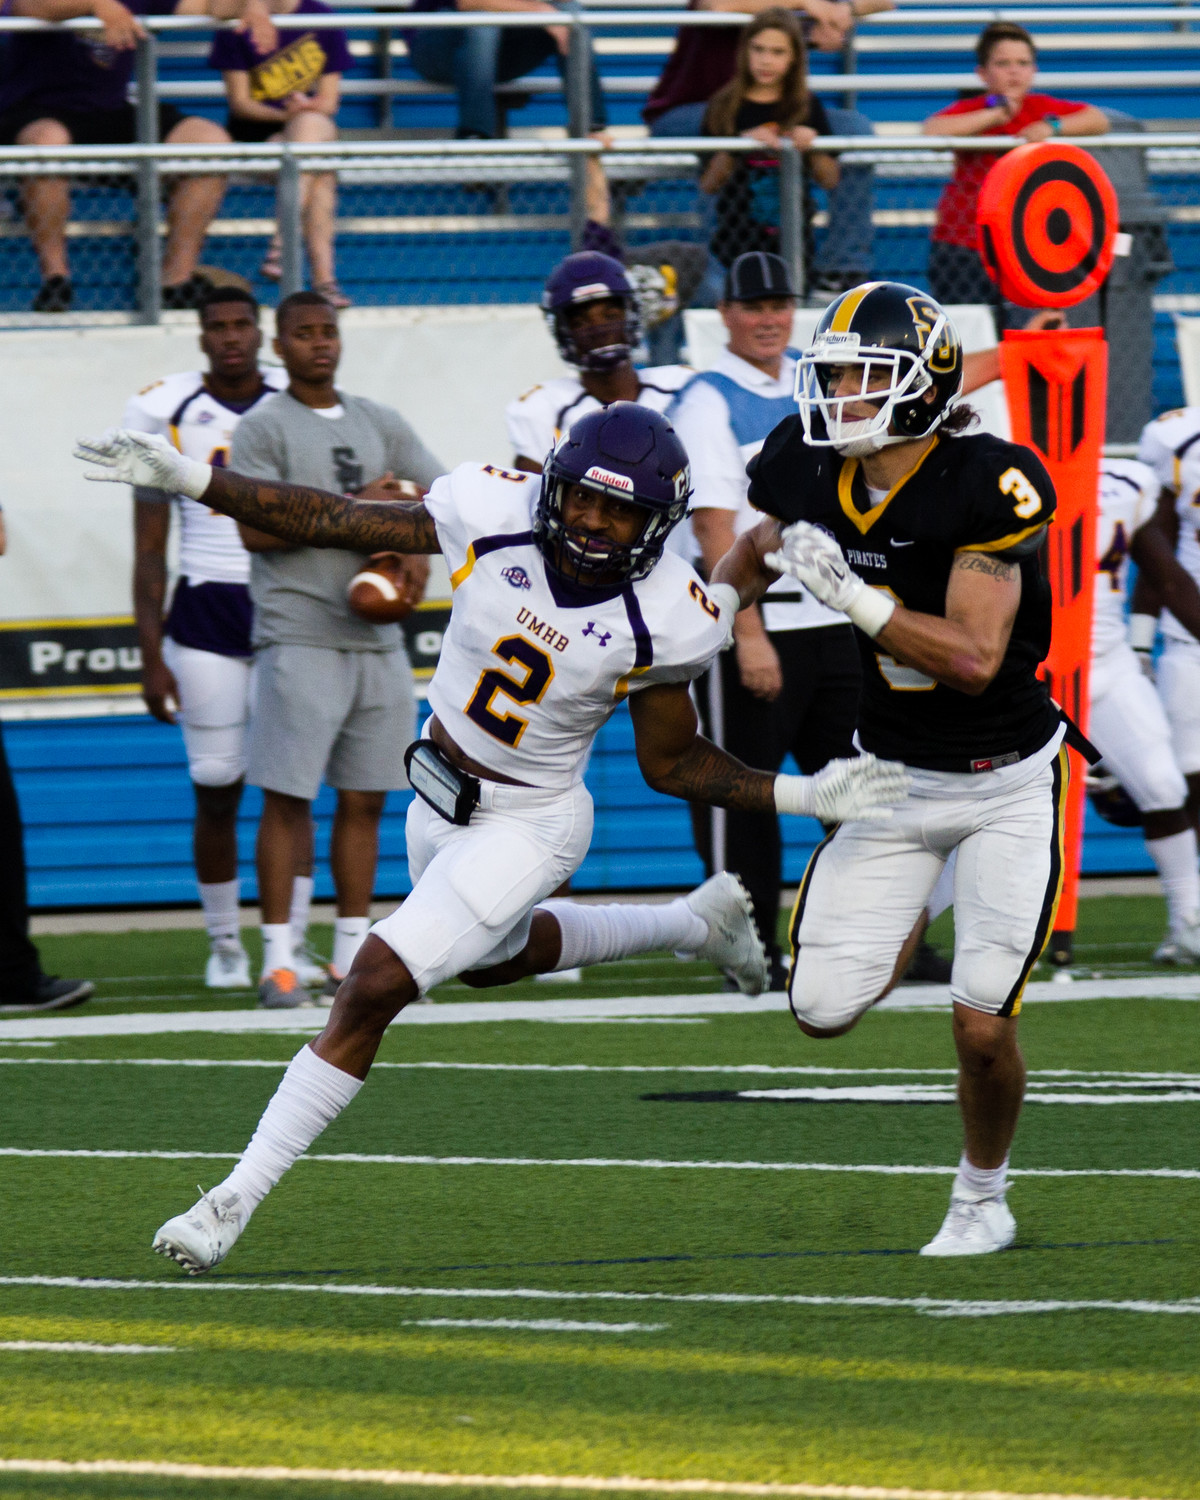 UMHB cornerback Kris Brown (2) had five tackles and returned a fumble 25 yards for a touchdown in Saturday's win over Southwestern. Brown is from Sealy High School.